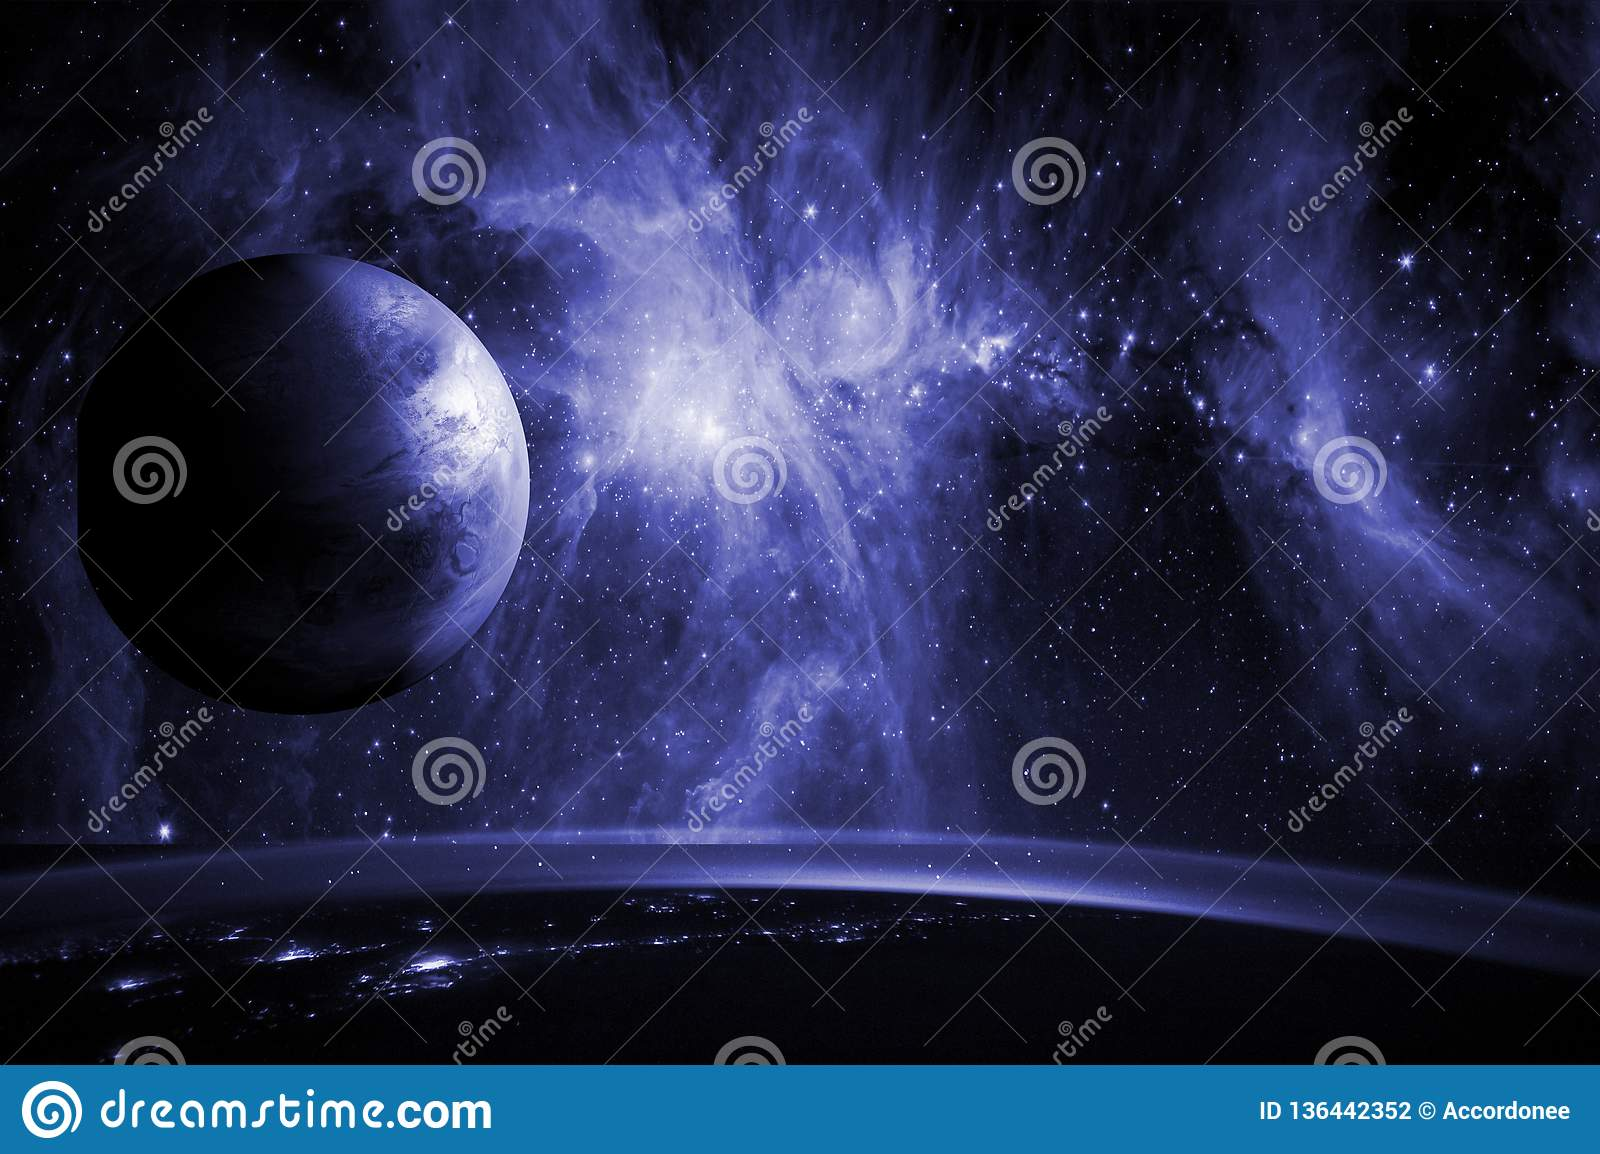 Close up planet earth biosphere in space with stars and galaxy on background. Elements of this image furnished by NASA. f